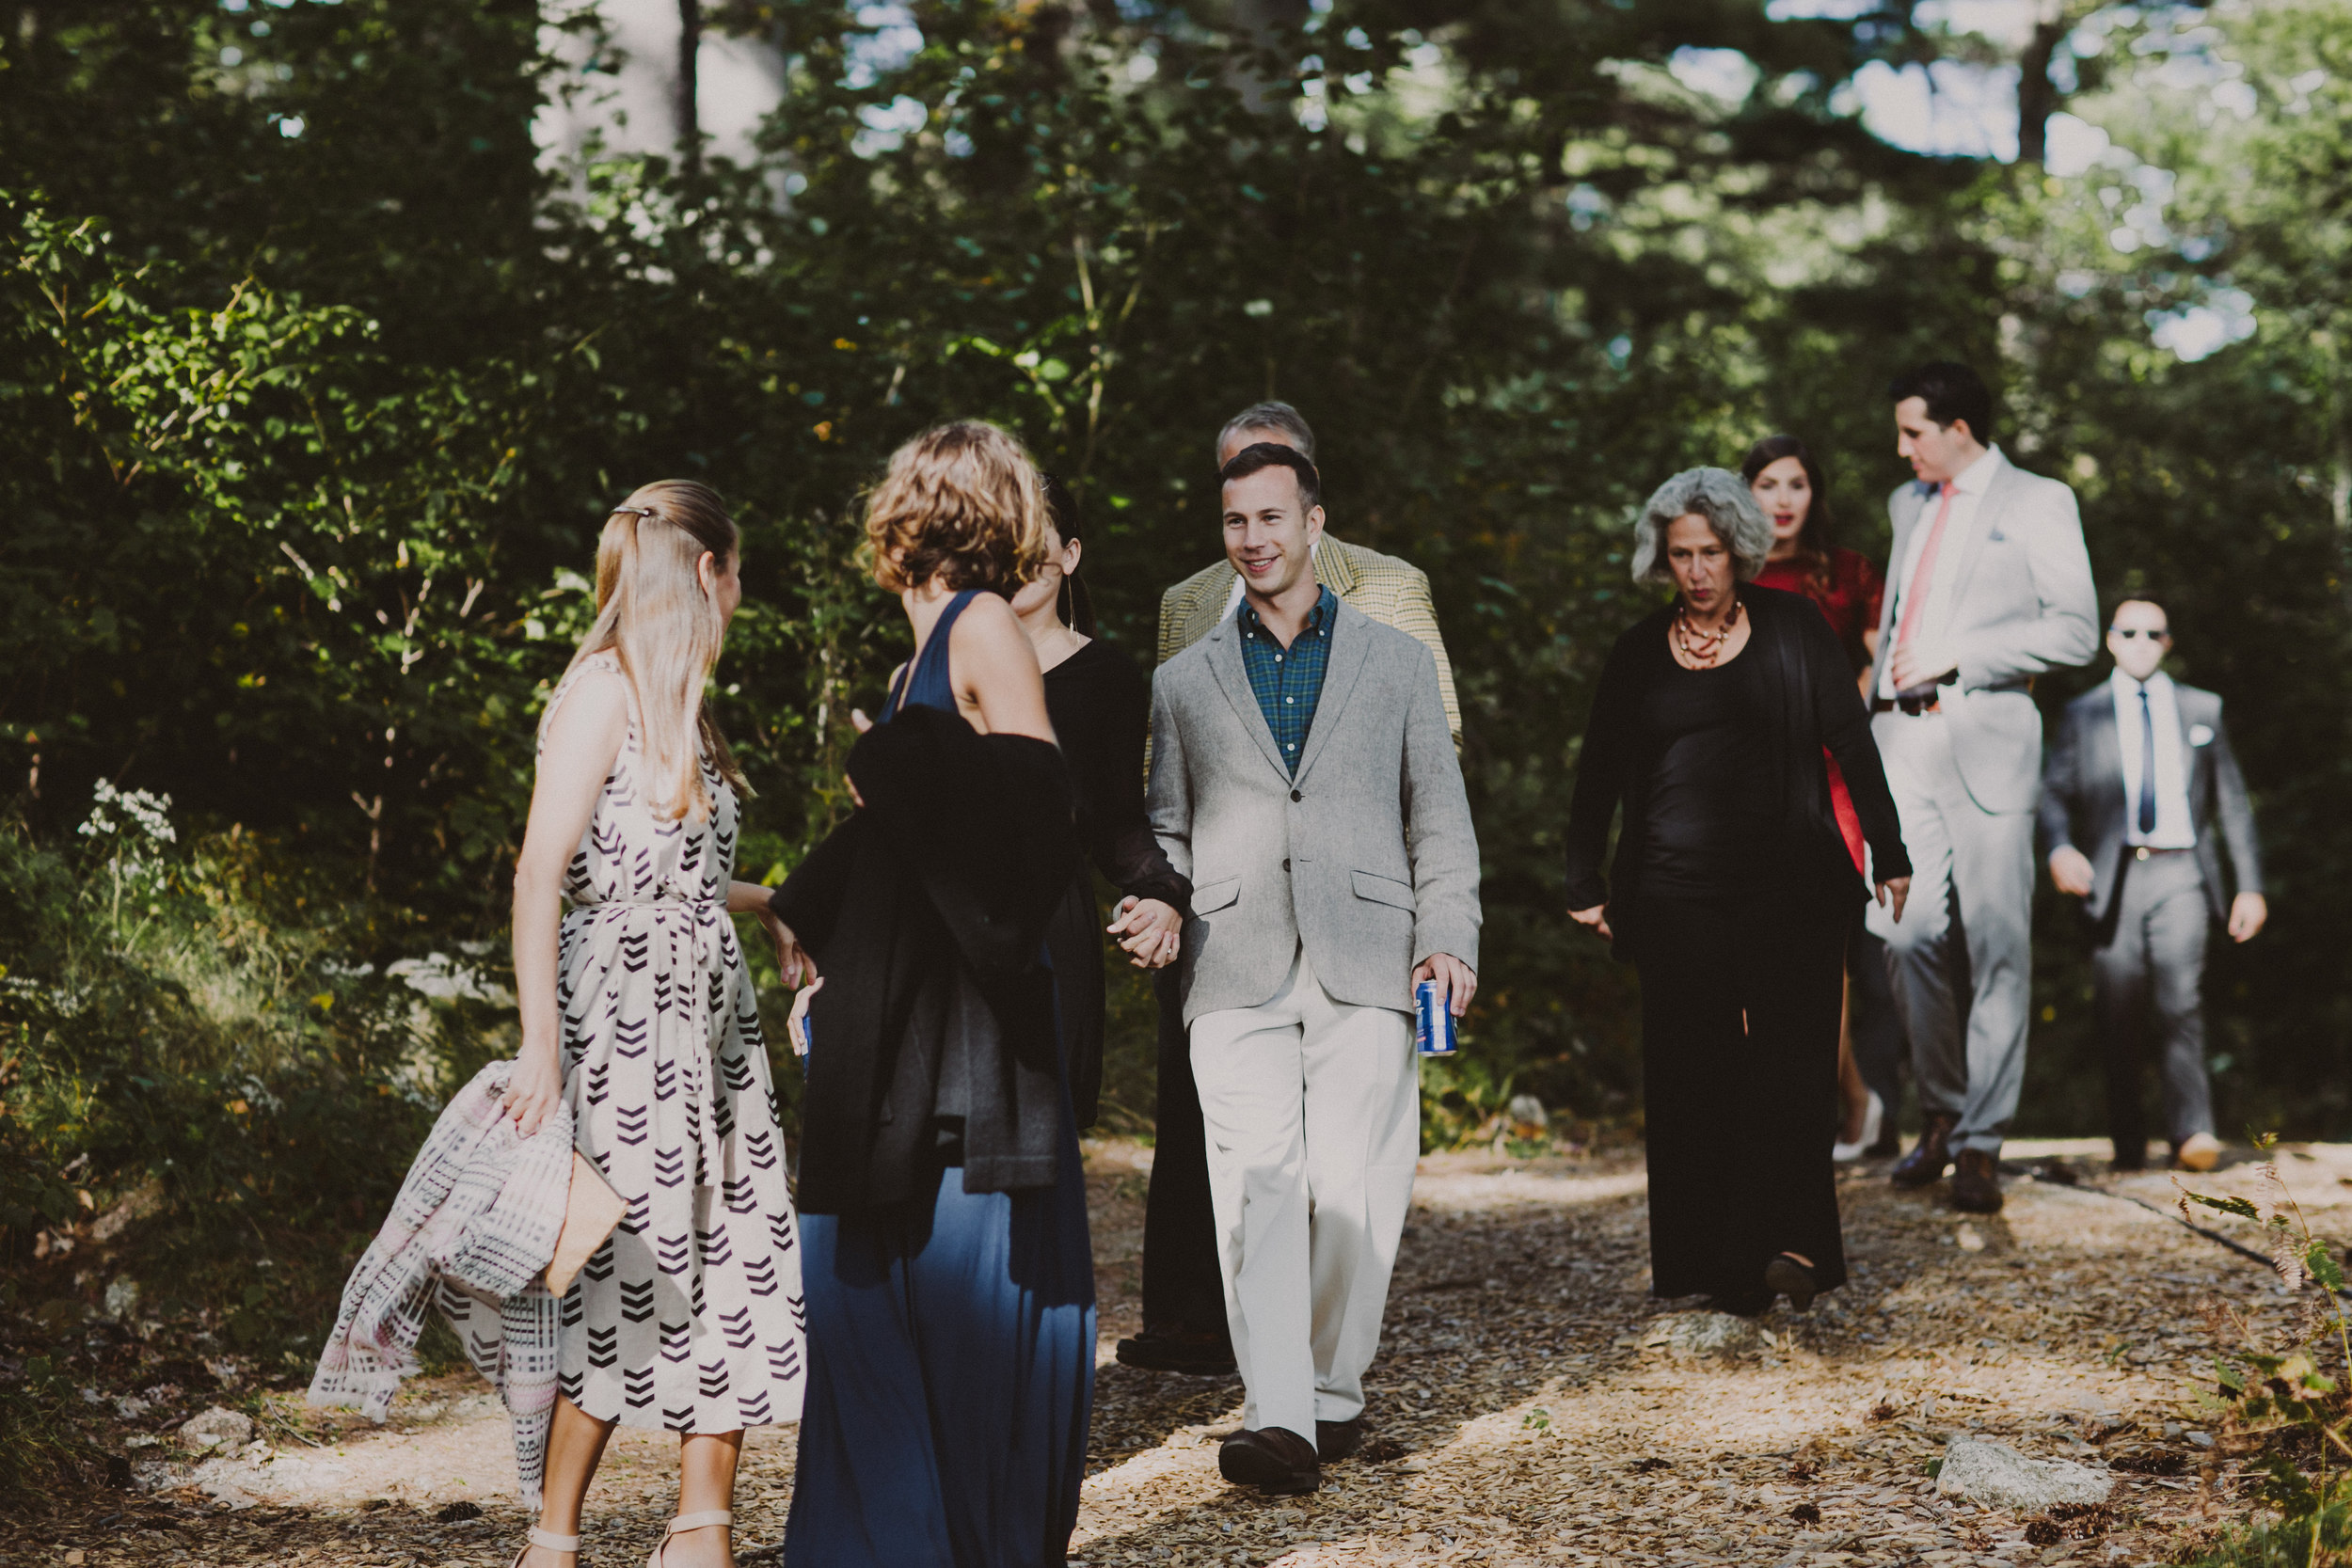 windsor mountain summer camp wedding NH chellise michael photography 1748.jpg